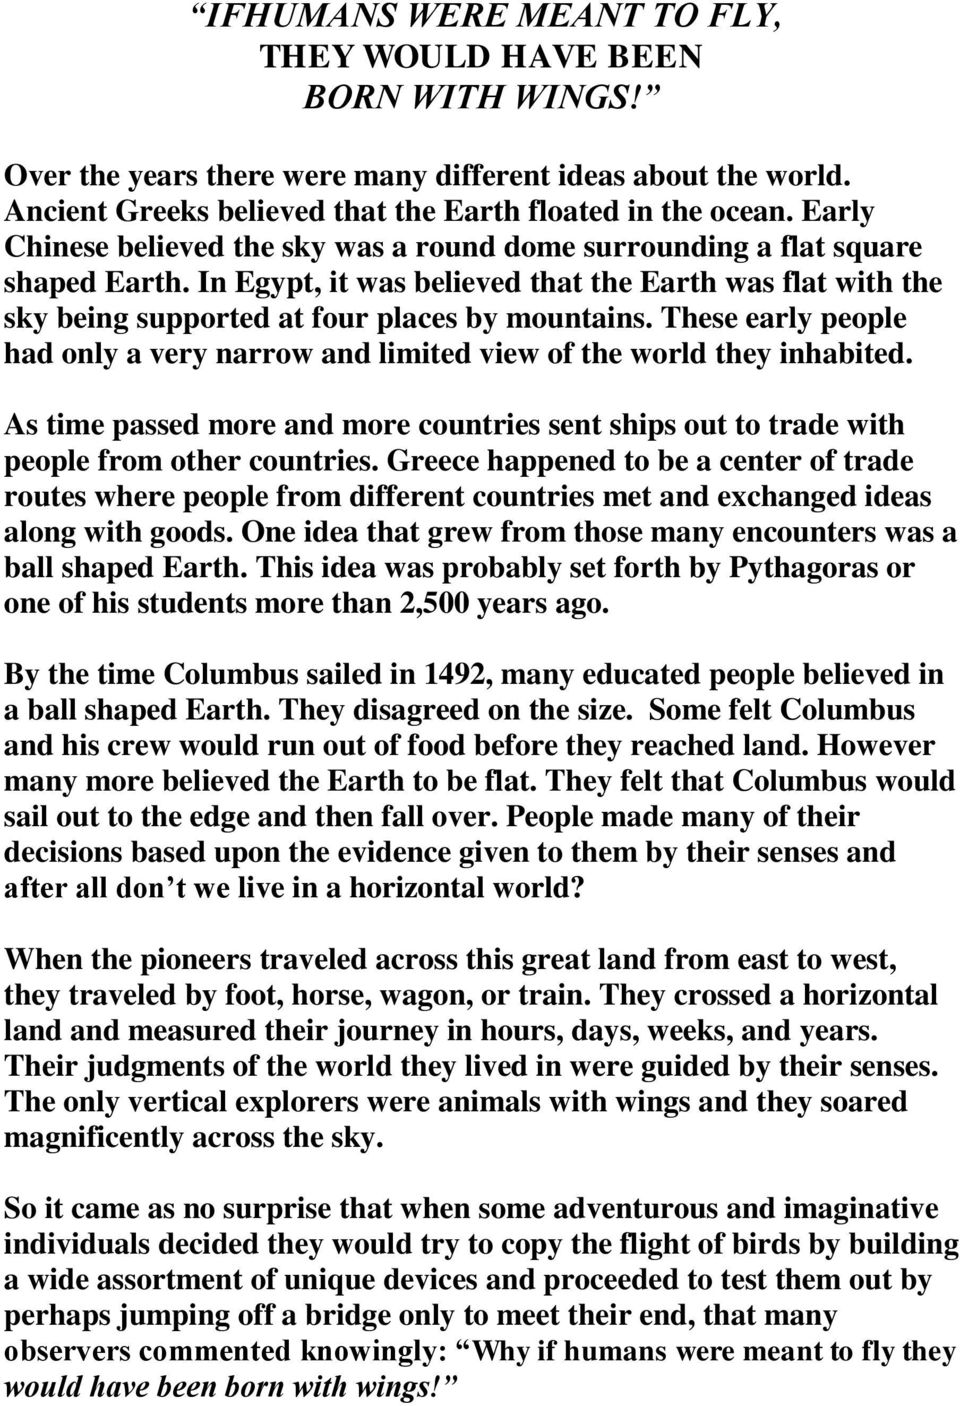 These early people had only a very narrow and limited view of the world they inhabited. As time passed more and more countries sent ships out to trade with people from other countries.